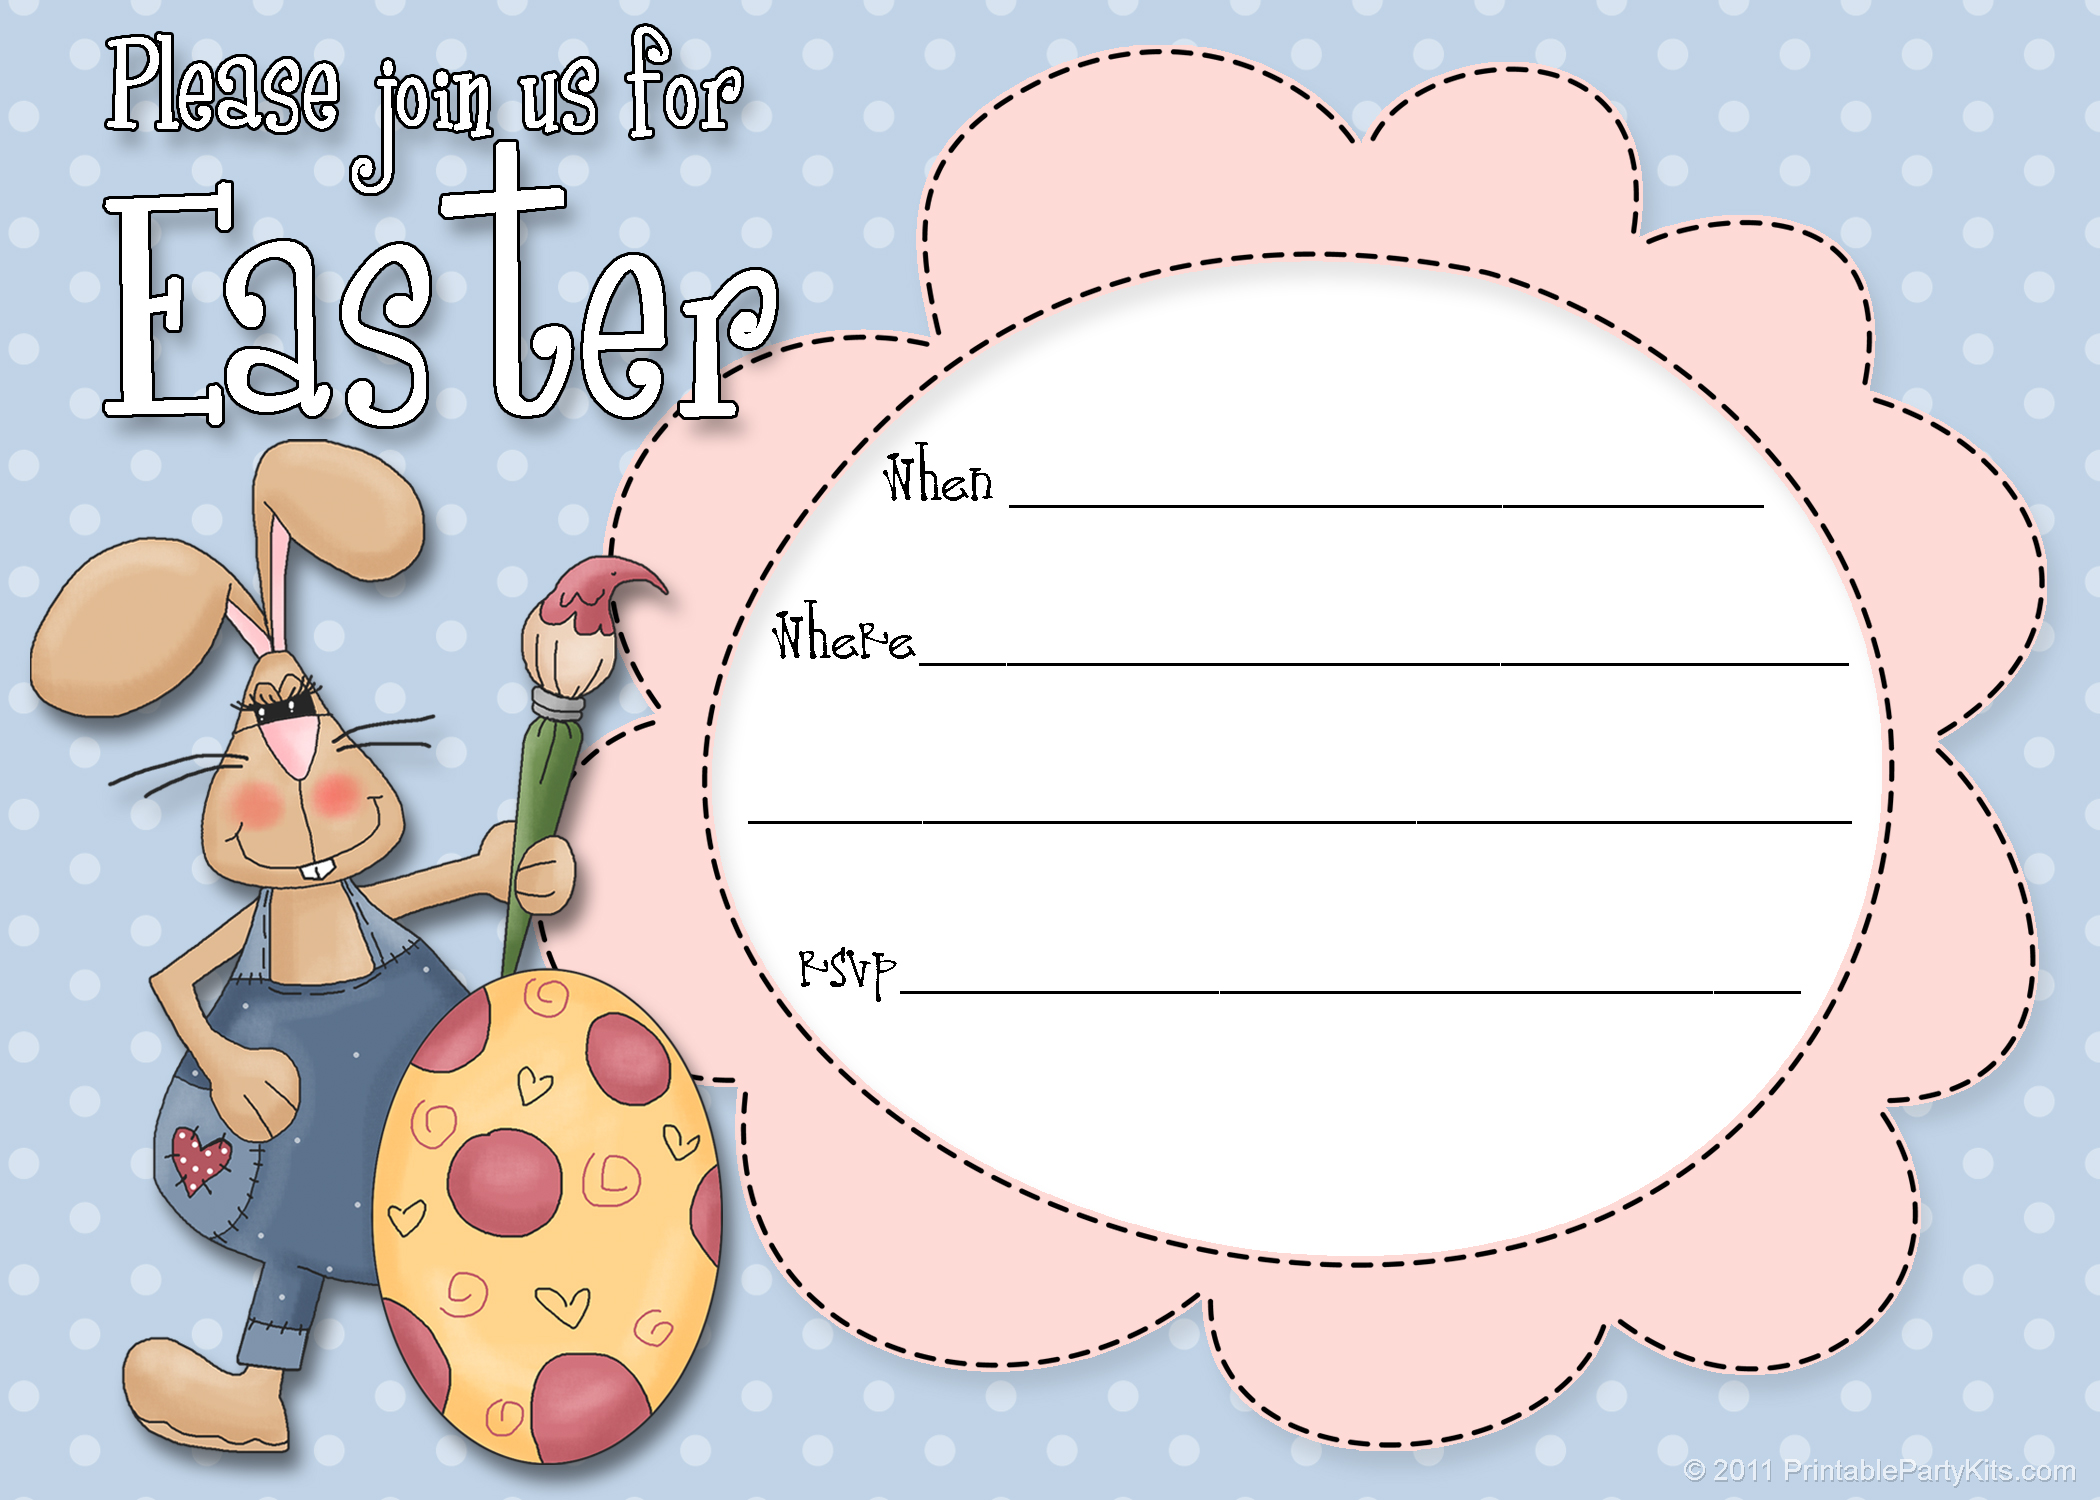 Art Printable Images Gallery Category Page 80